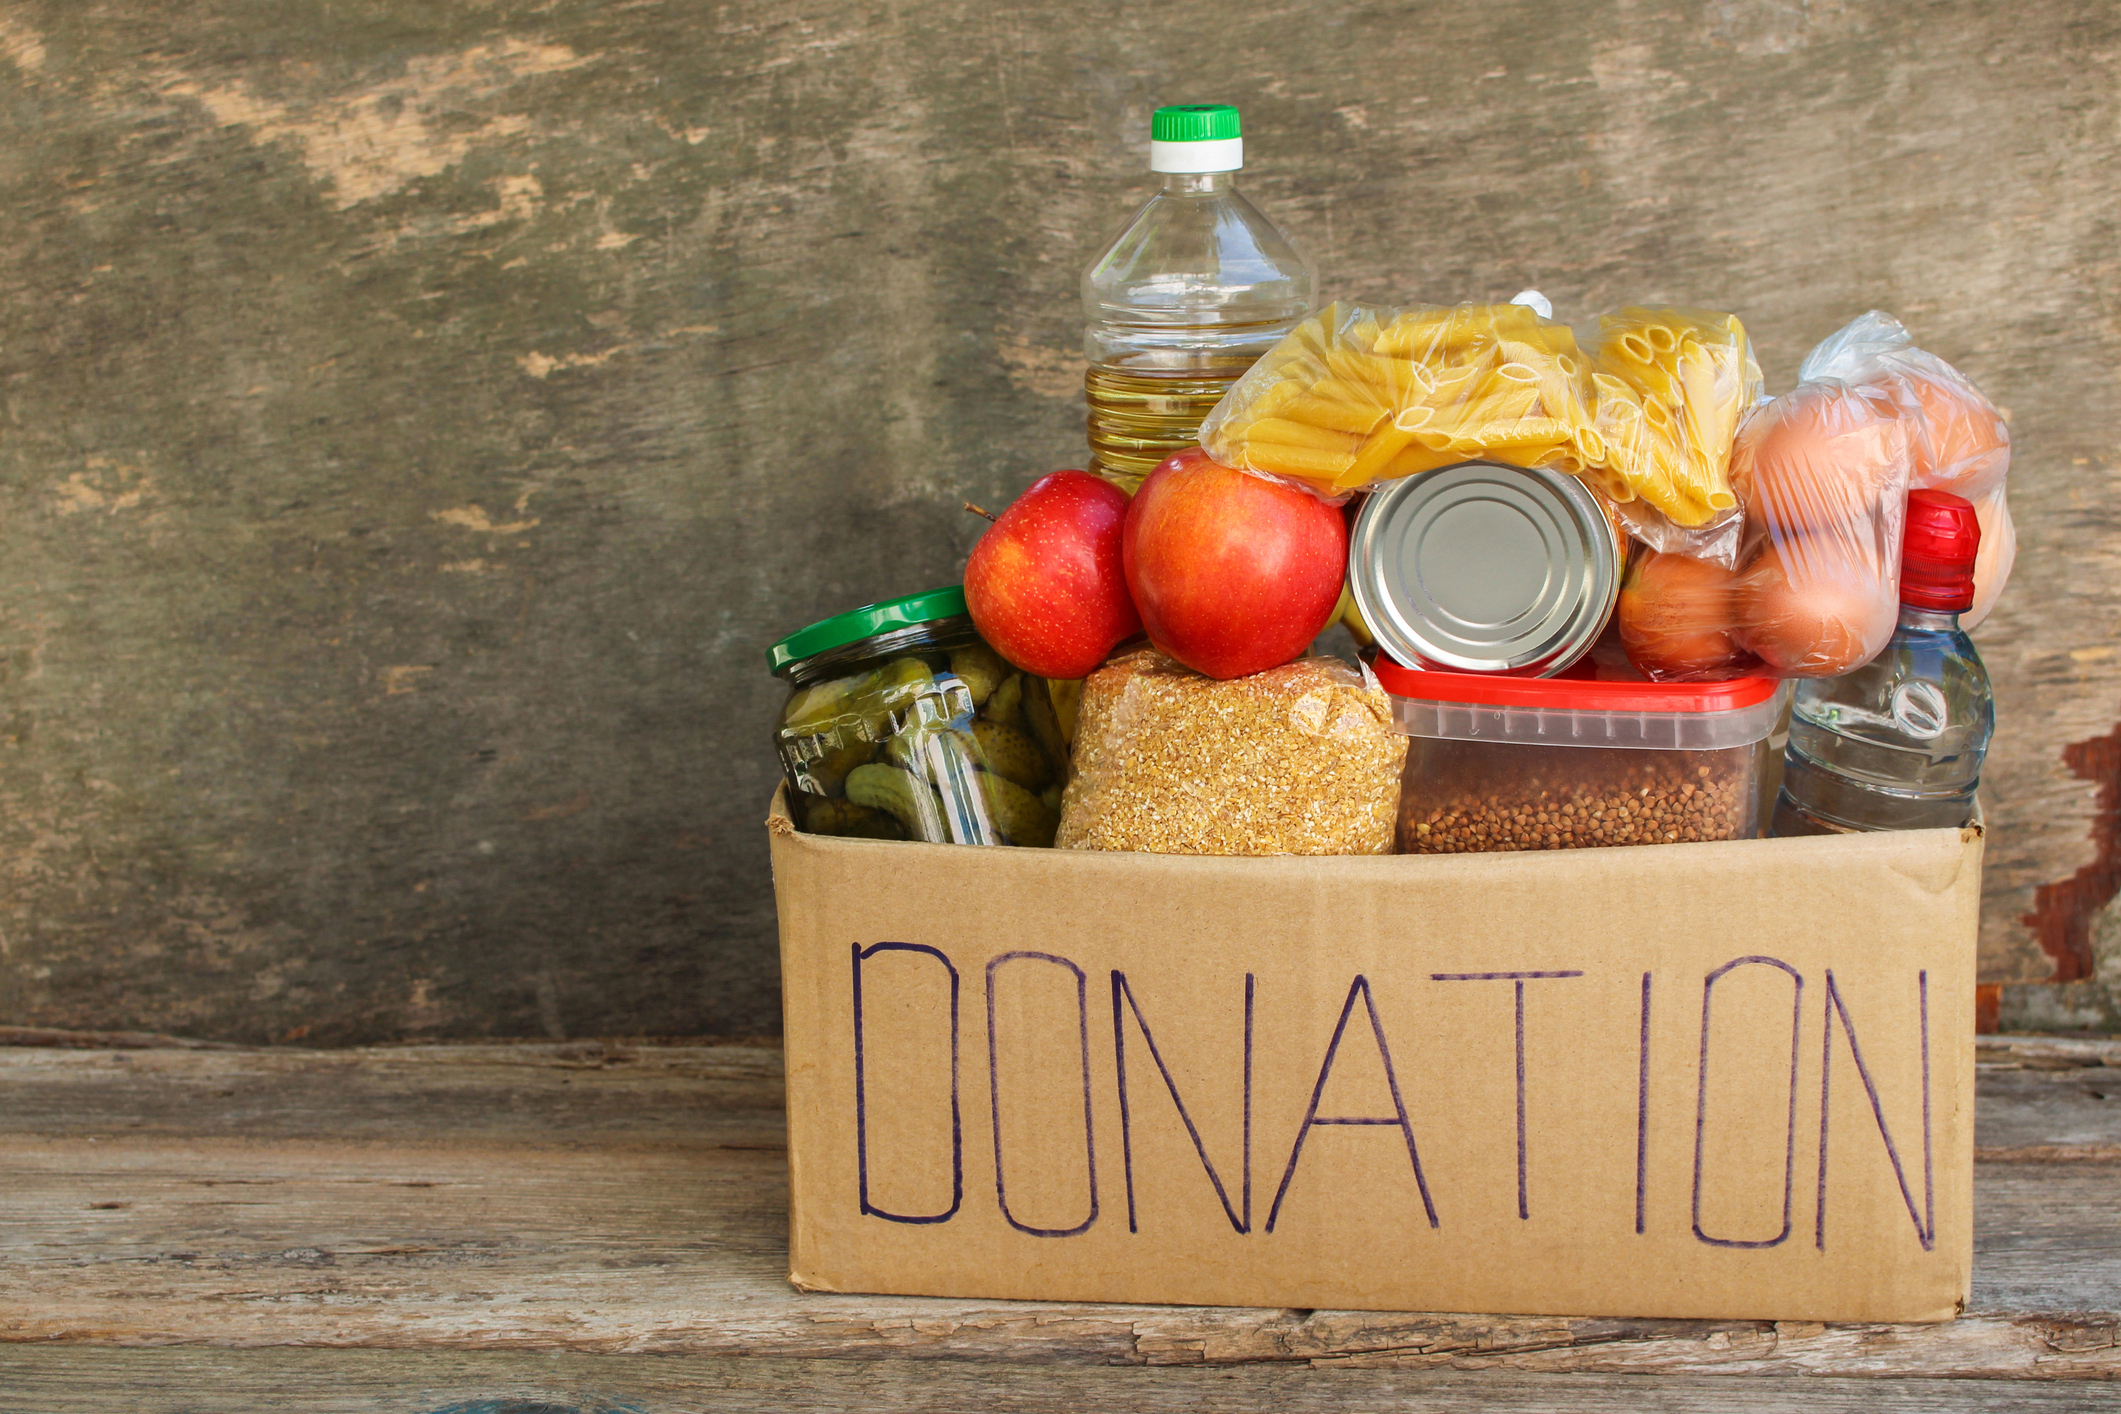 Volunteers are needed to help FareShare distribute surplus food to people. Photo: Mukhina1/Getty